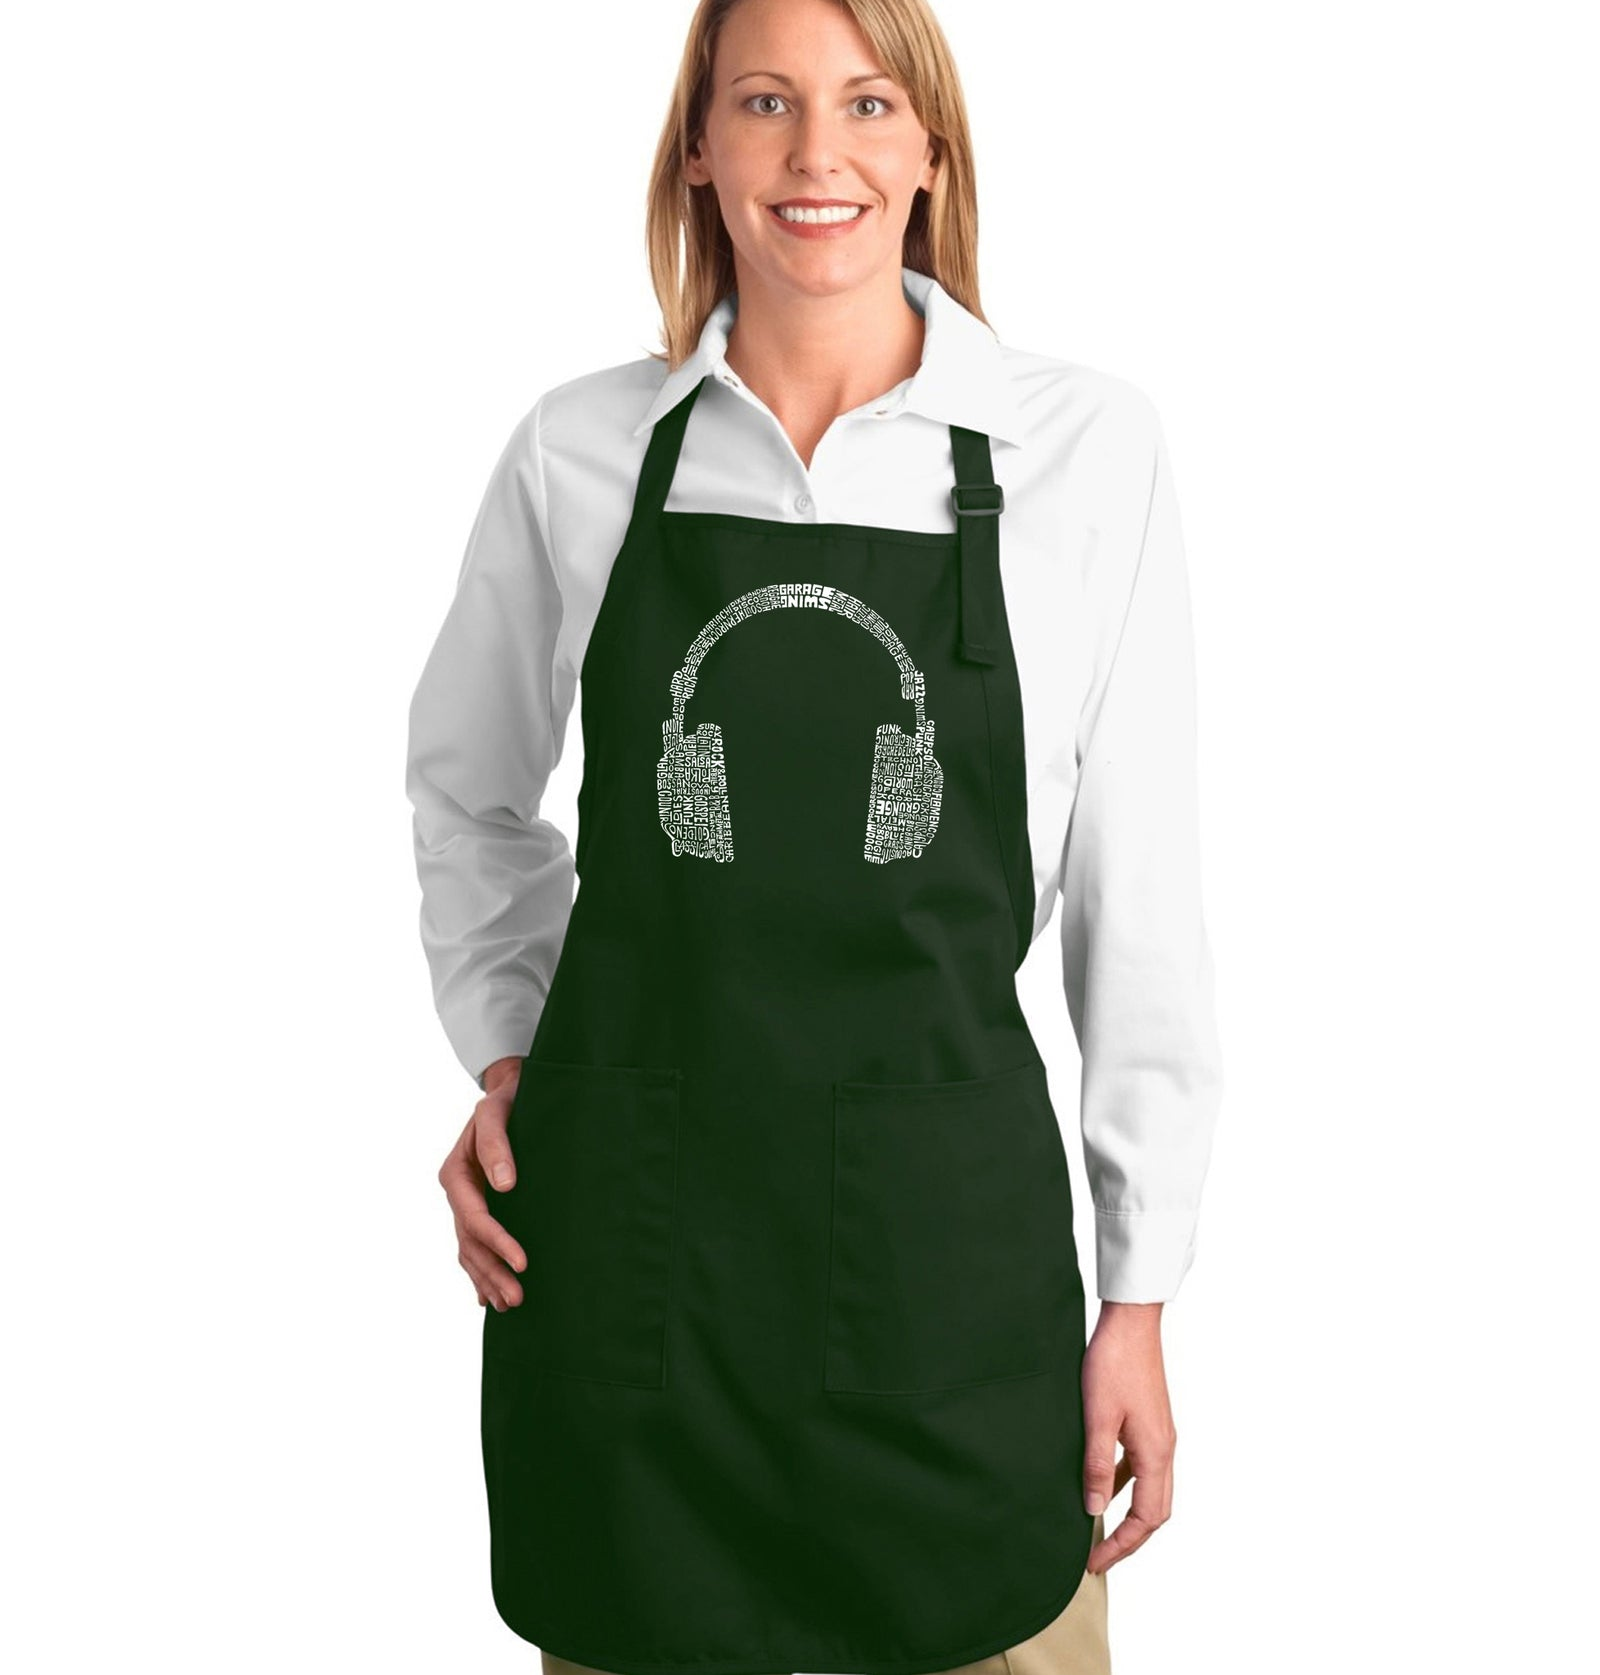 Full Length Apron - 63 DIFFERENT GENRES OF MUSIC